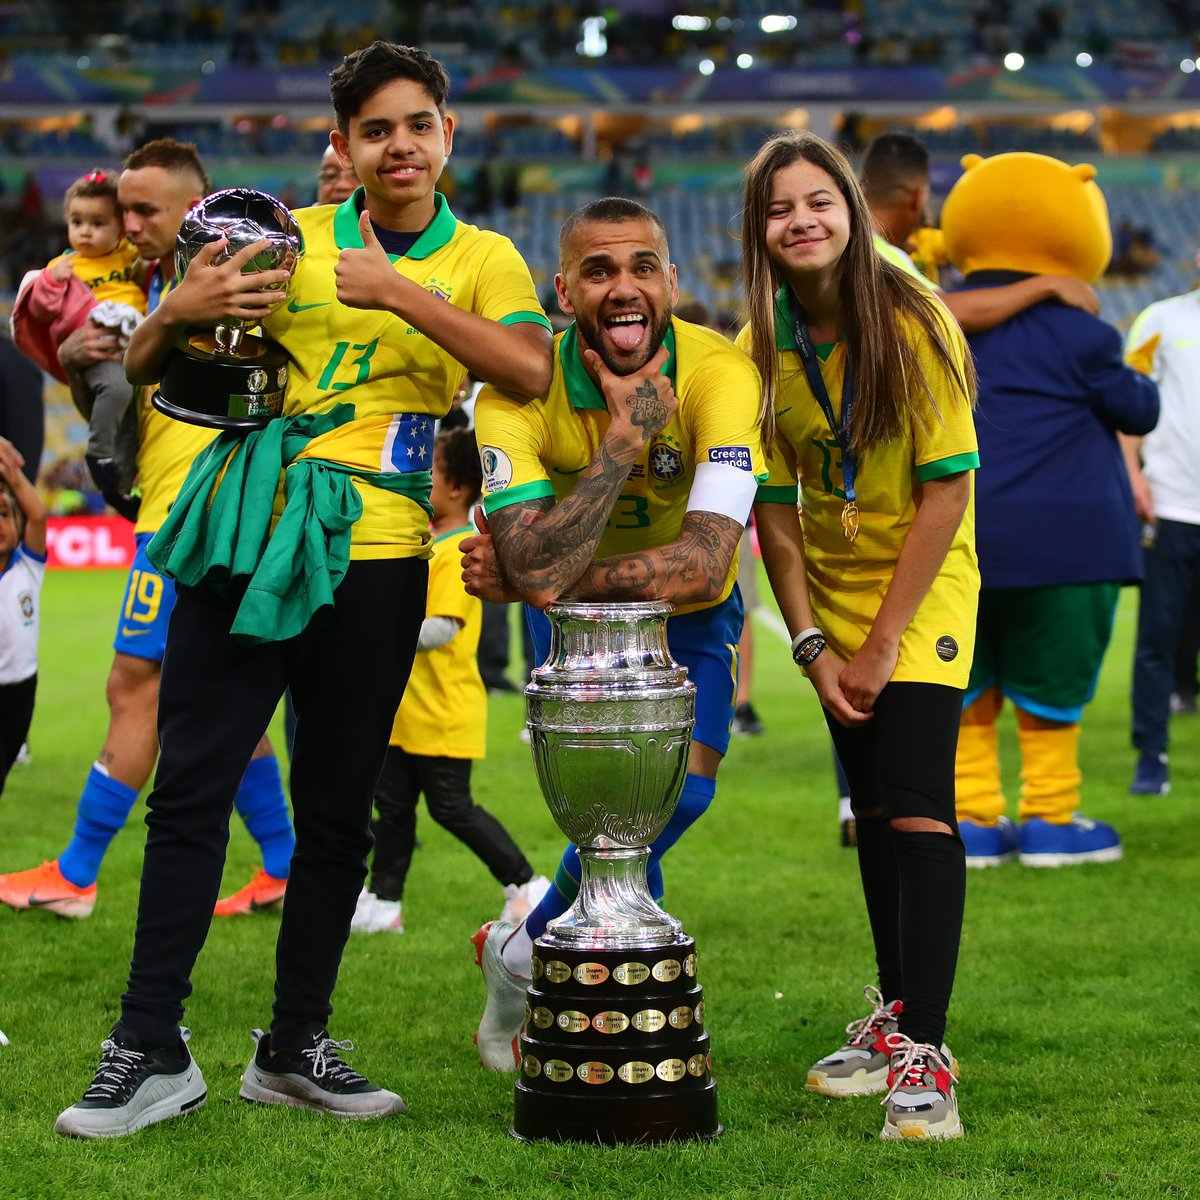 🏆🏆🏆🏆🏆🏆🏆 🏆🏆🏆🏆🏆🏆🏆 🏆🏆🏆4️⃣🏆🏆🏆 🏆🏆🏆0️⃣🏆🏆🏆 🏆🏆🏆🏆🏆🏆🏆 🏆🏆🏆🏆🏆🏆🏆  📅 1 Year Ago Today:  ✅ @DaniAlvesD2 became the 1st player EVER to win 40 trophies in his career. https://t.co/bIq74RluBT